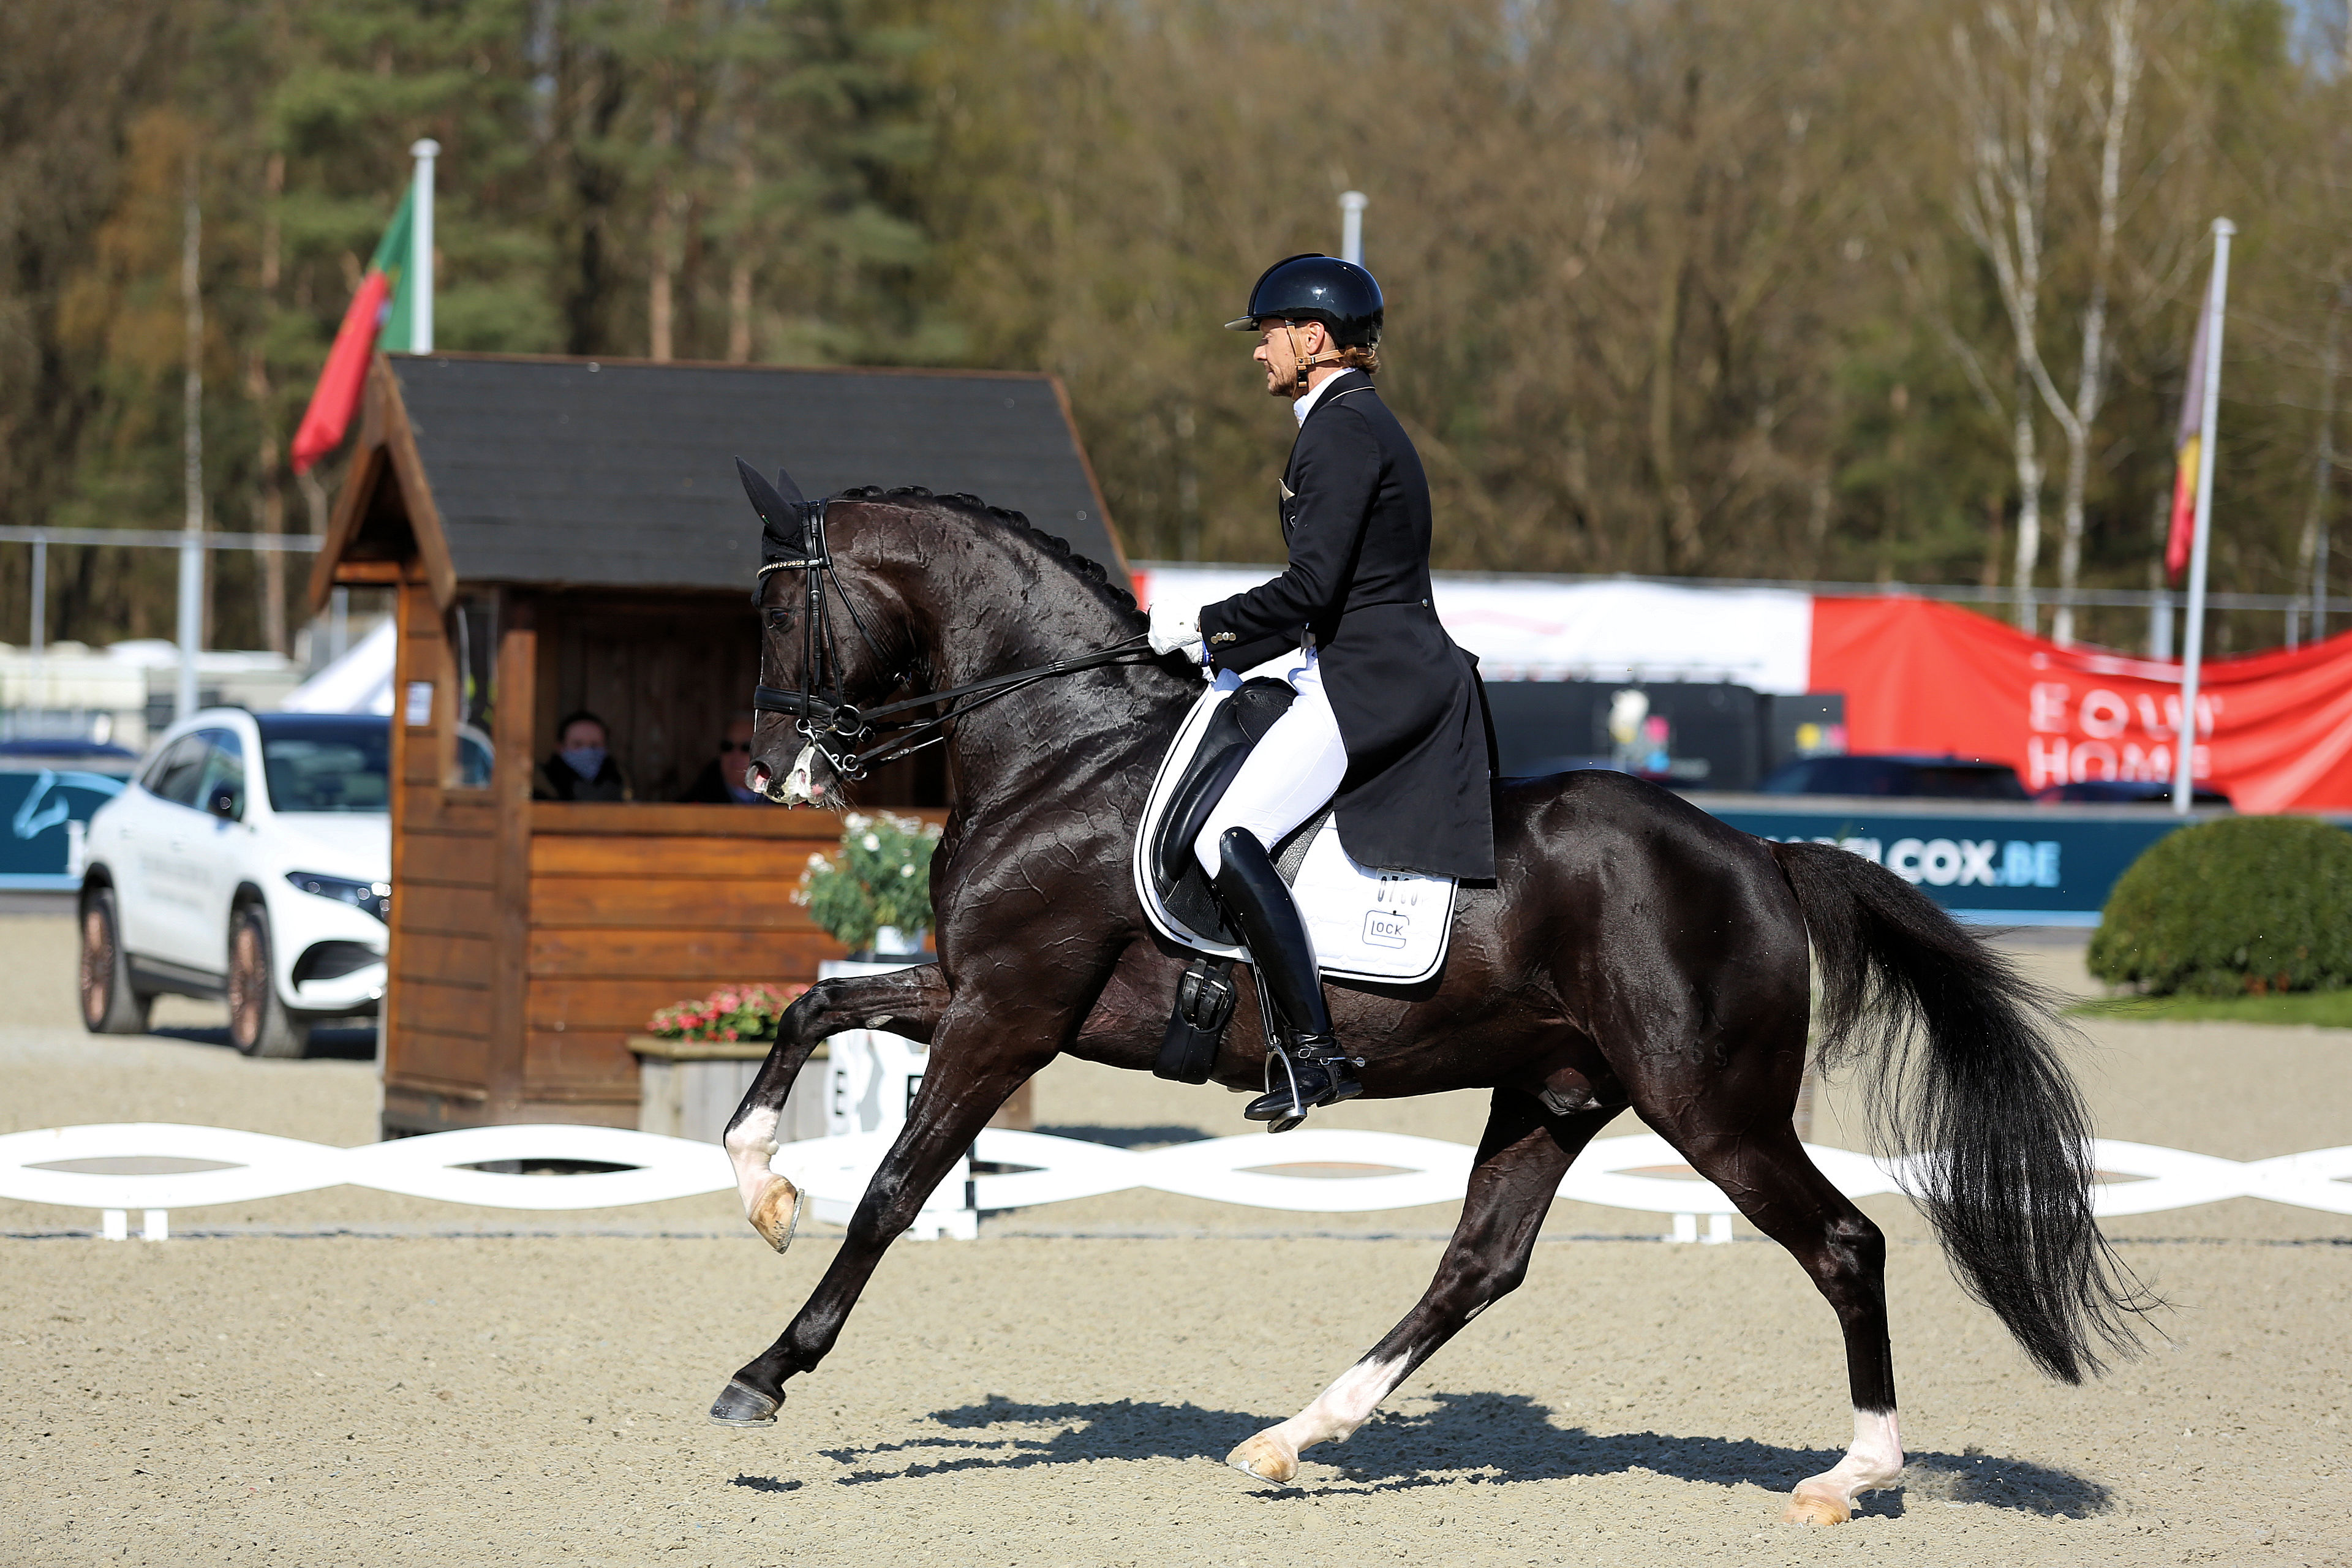 Edward Gal rides to victory with both Toto Jr and Total US in Exloo